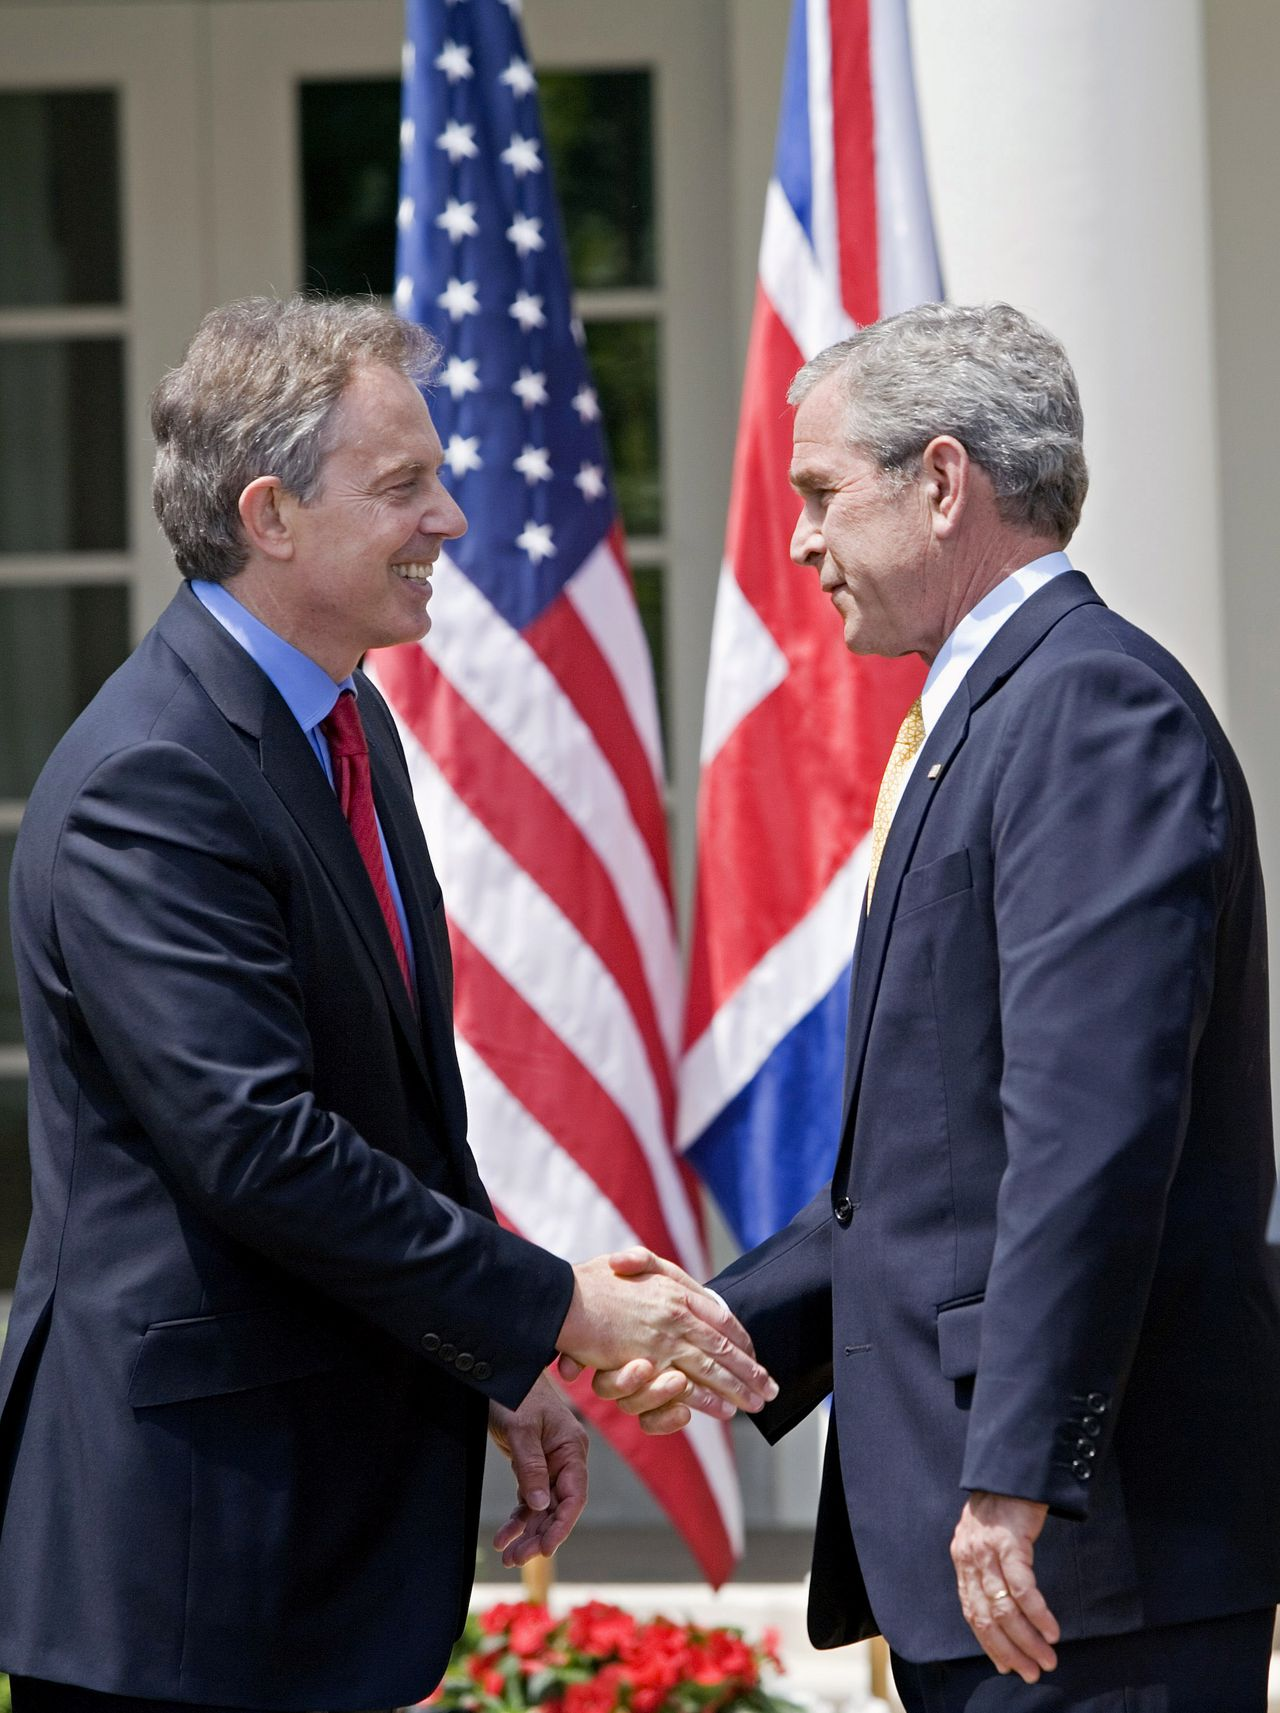 British Prime Minister Tony Blair, left, and U.S. President George W. Bush shake hands after a joint news conference in the Rose Garden of the White House, May 17, 2007, in Washington D.C. Bush and Blair said the U.S.-U.K. alliance in Iraq and cooperation on other global issues won't be diminished once Blair leaves office. Photographer: Brendan Smialowski/Bloomberg News